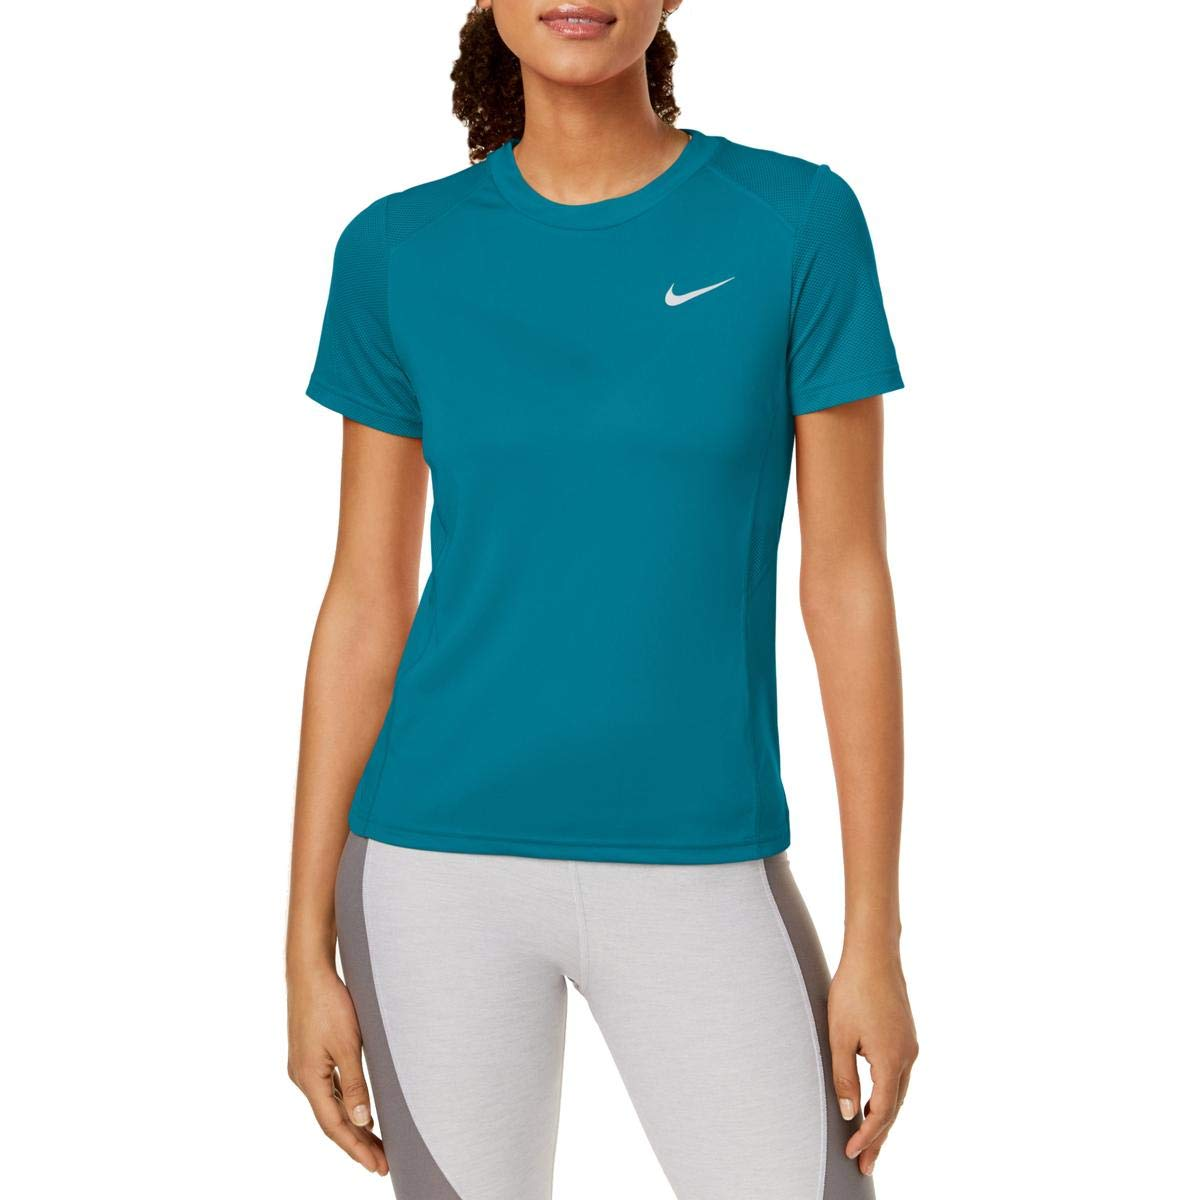 Amazon.com: Nike Womens Miler Yoga Fitness T-Shirt Blue S ...